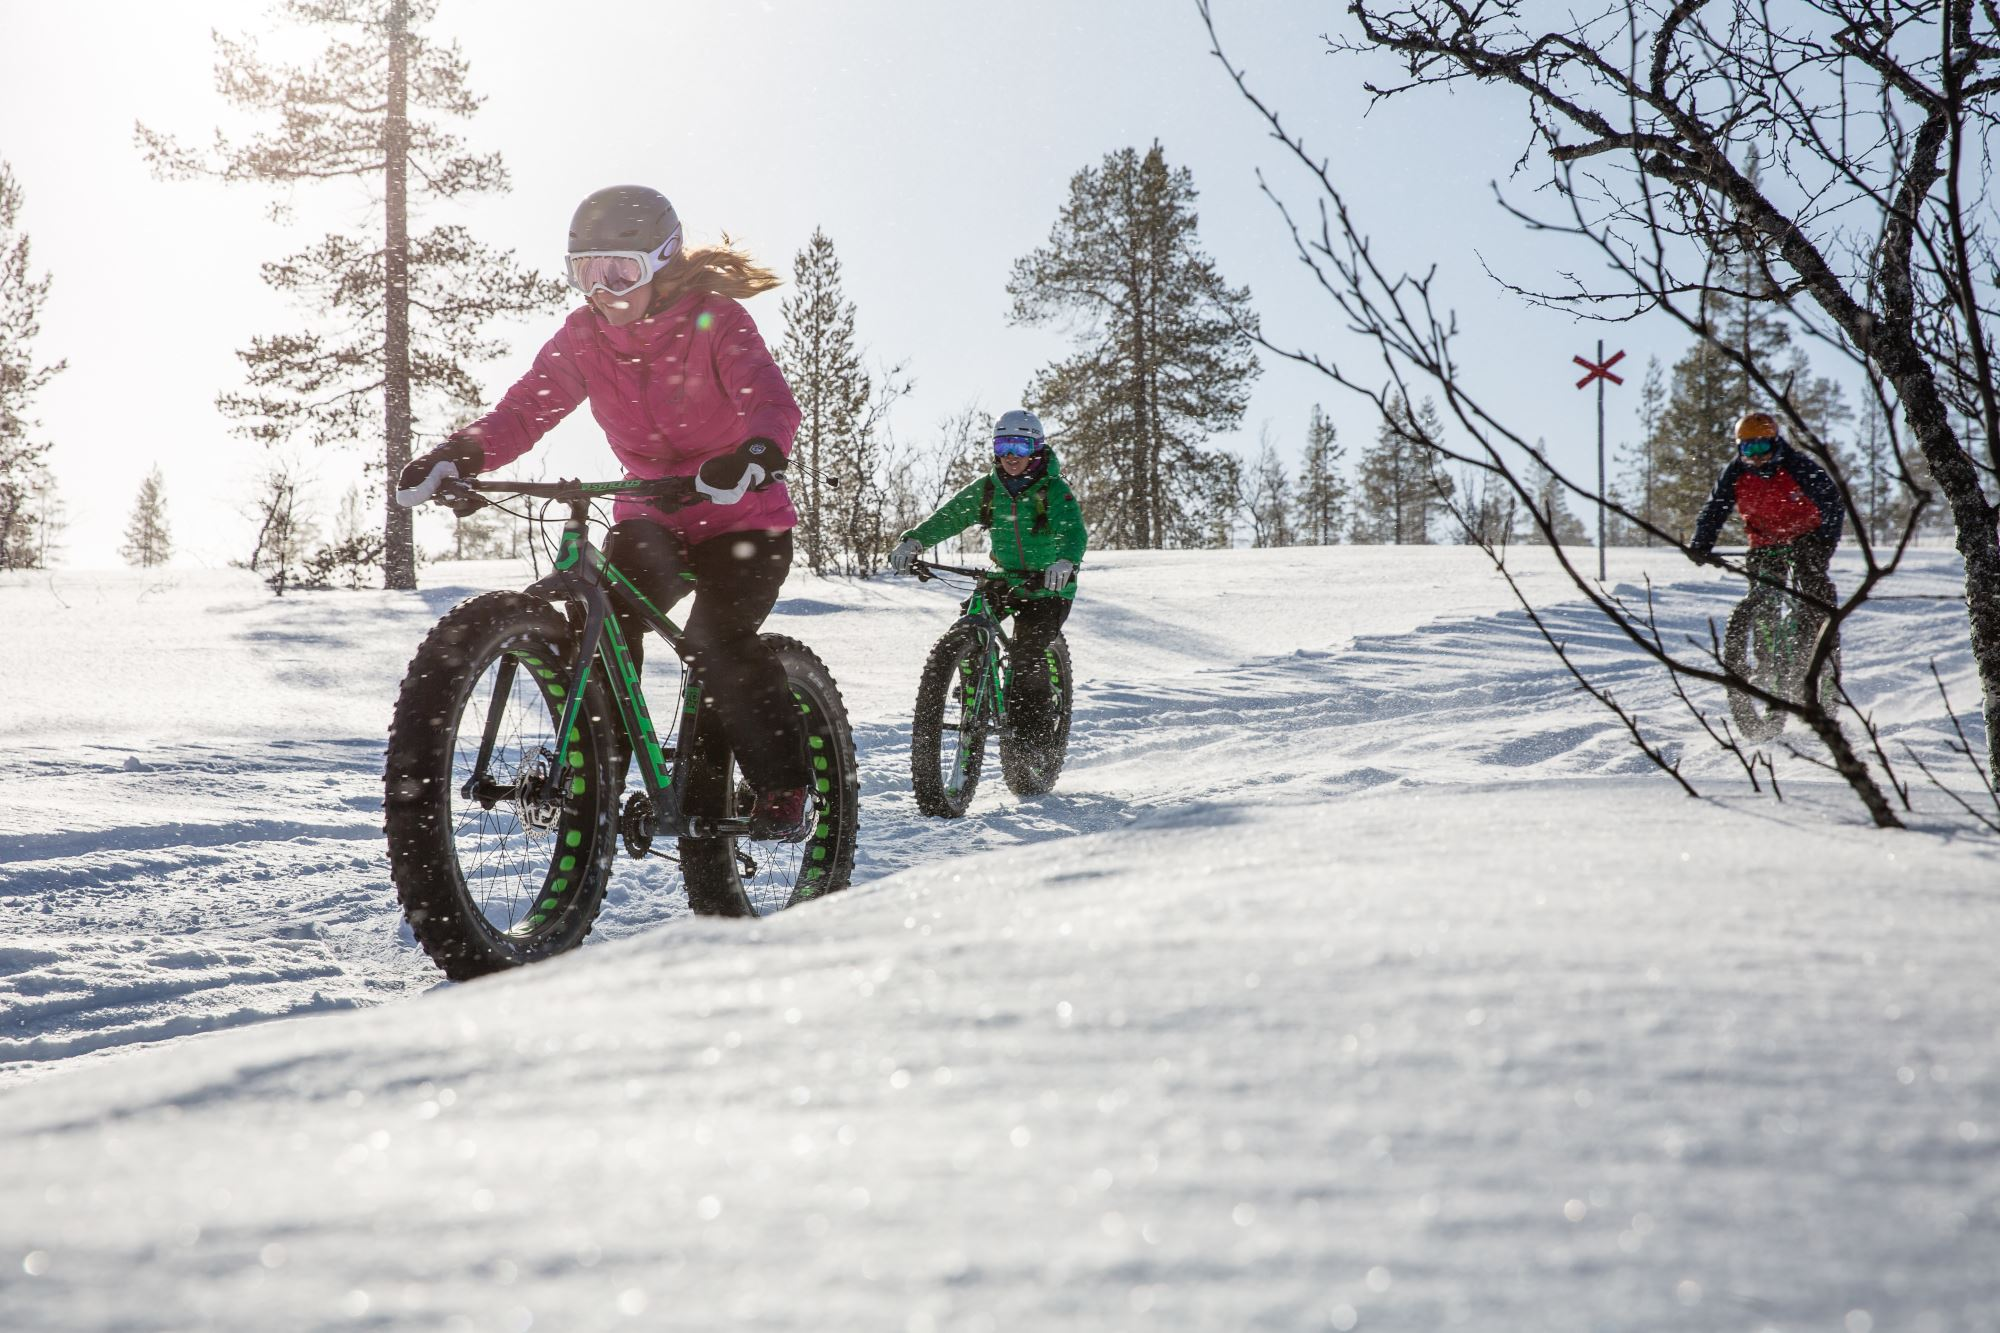 Anette Andersson, Cykla fatbikes på vintern